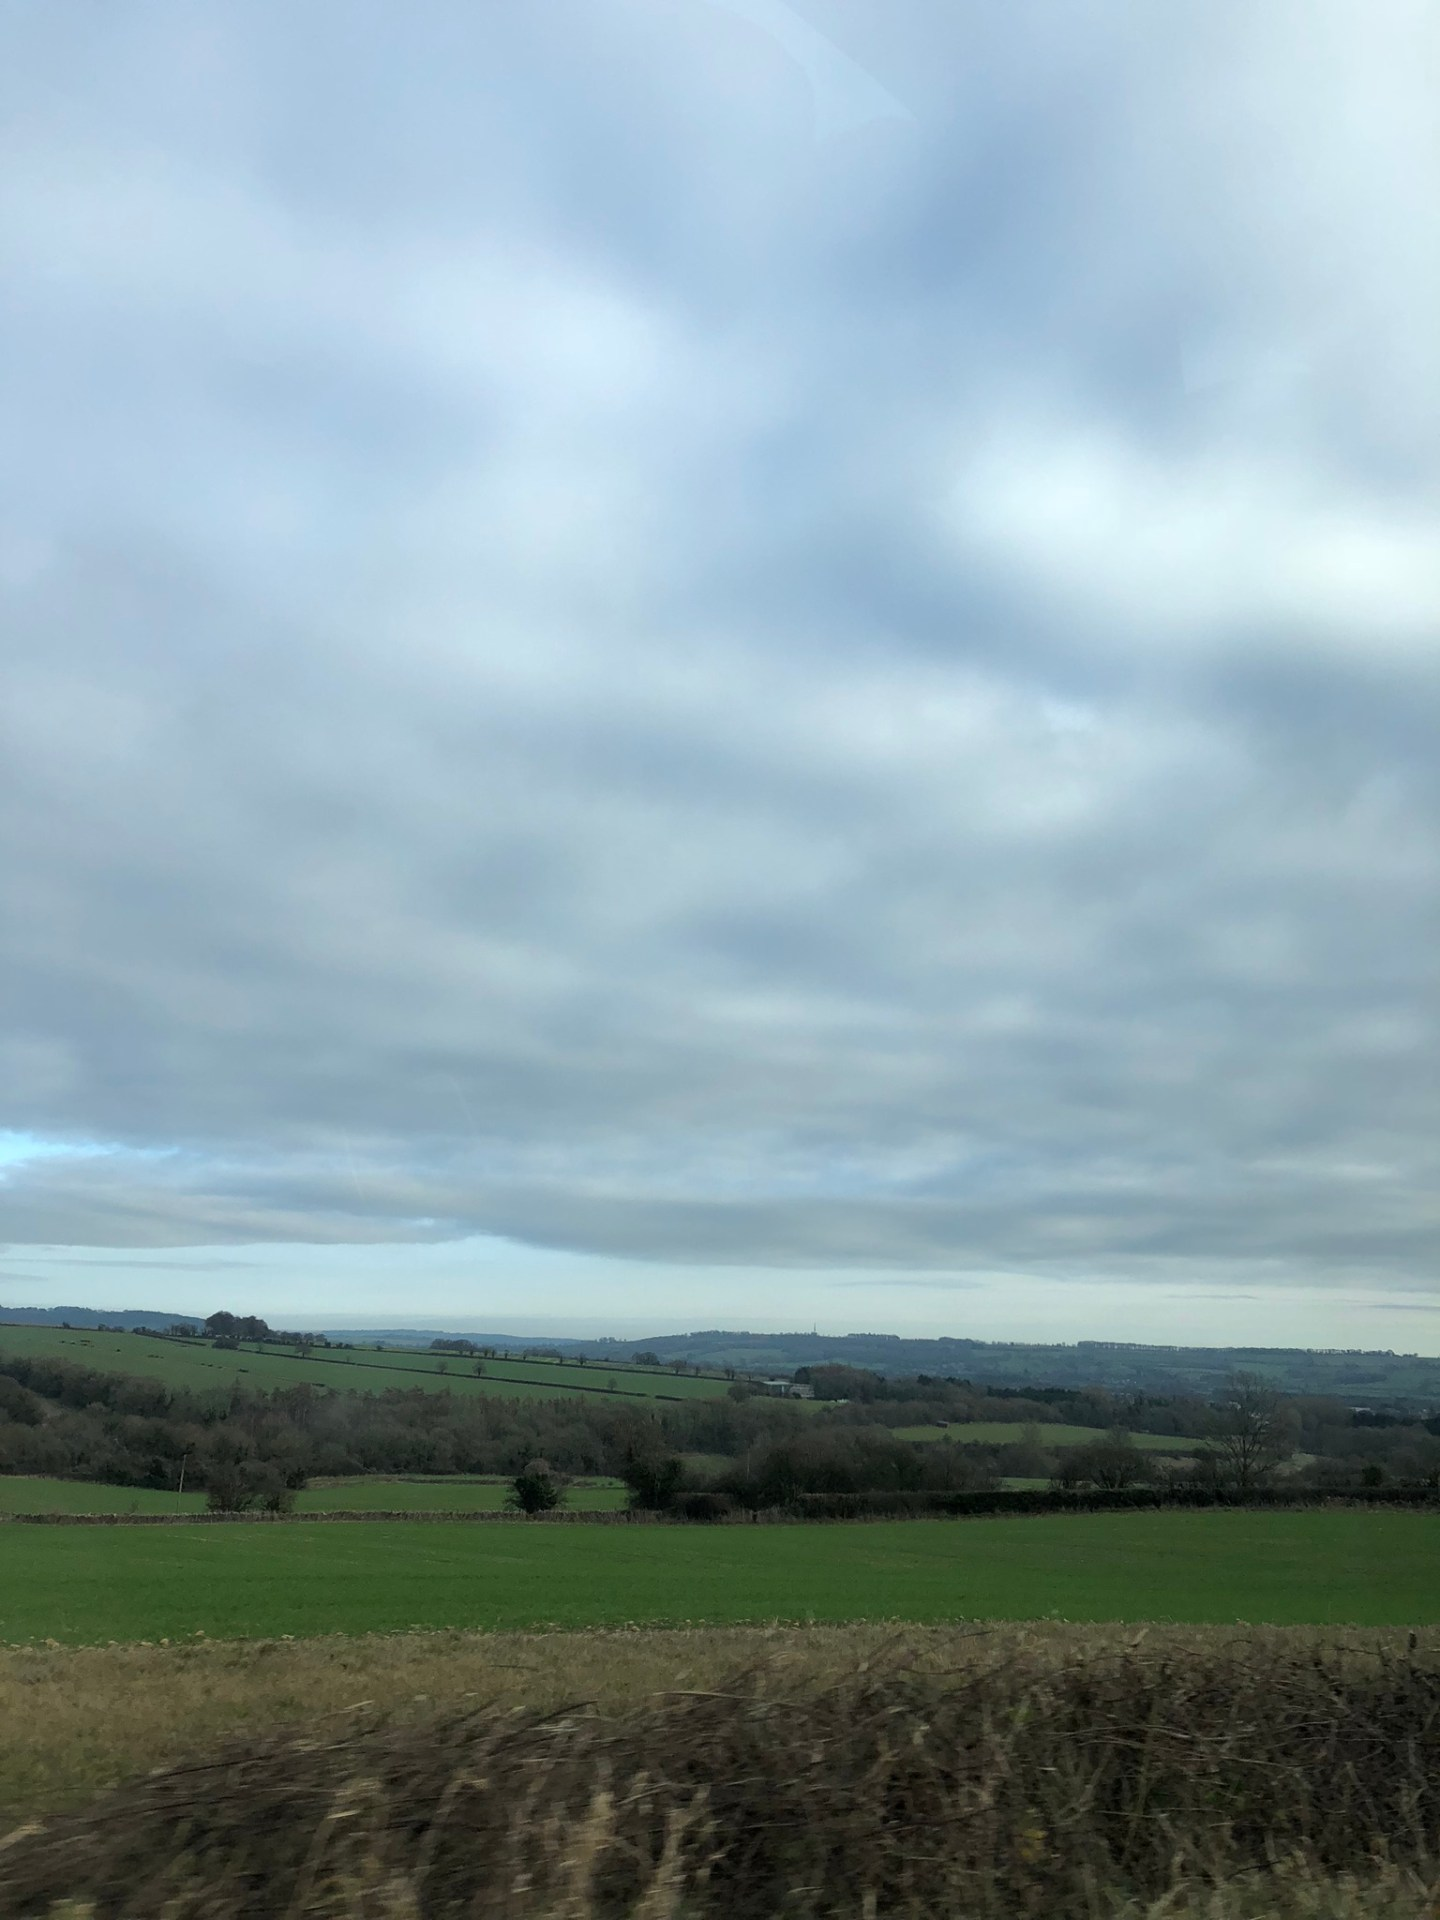 Views over the Cotswolds